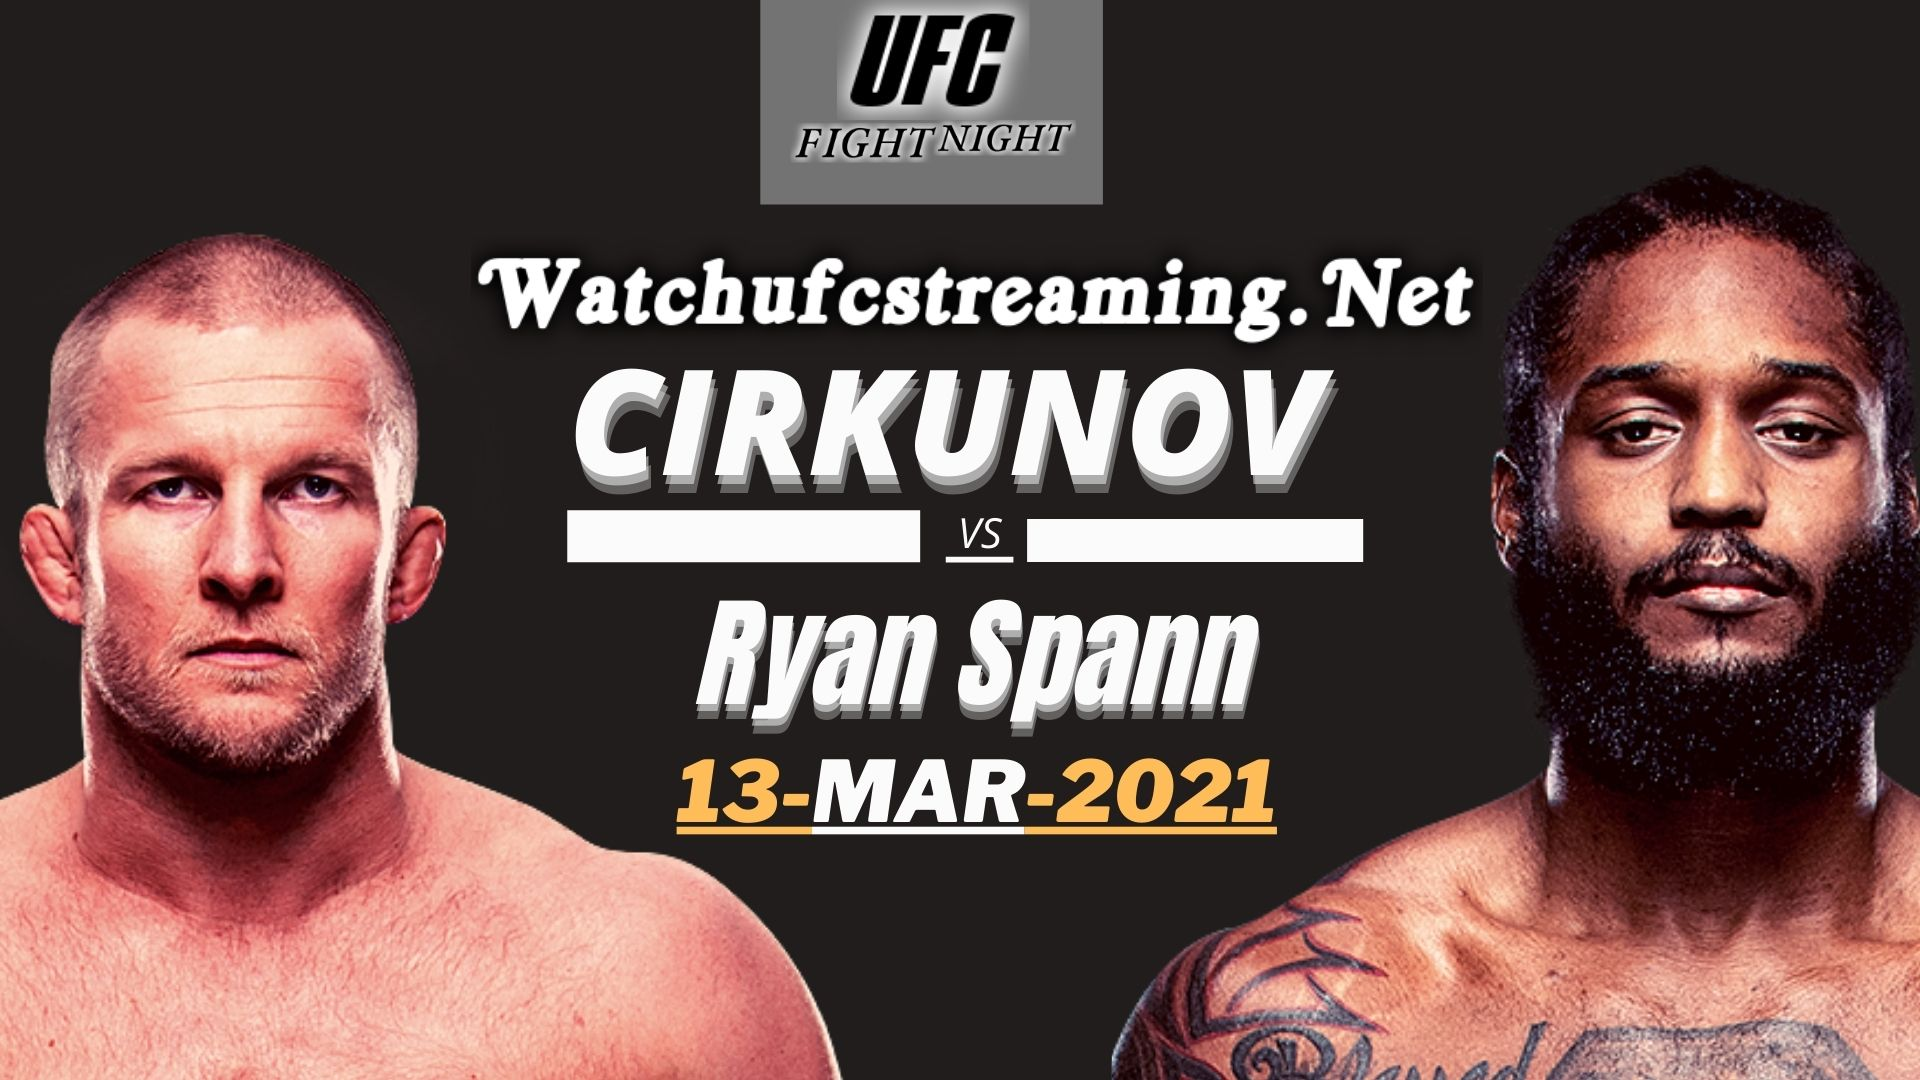 UFC | Cirkunov Vs Spann Highlights 2021 | Light Heavyweight